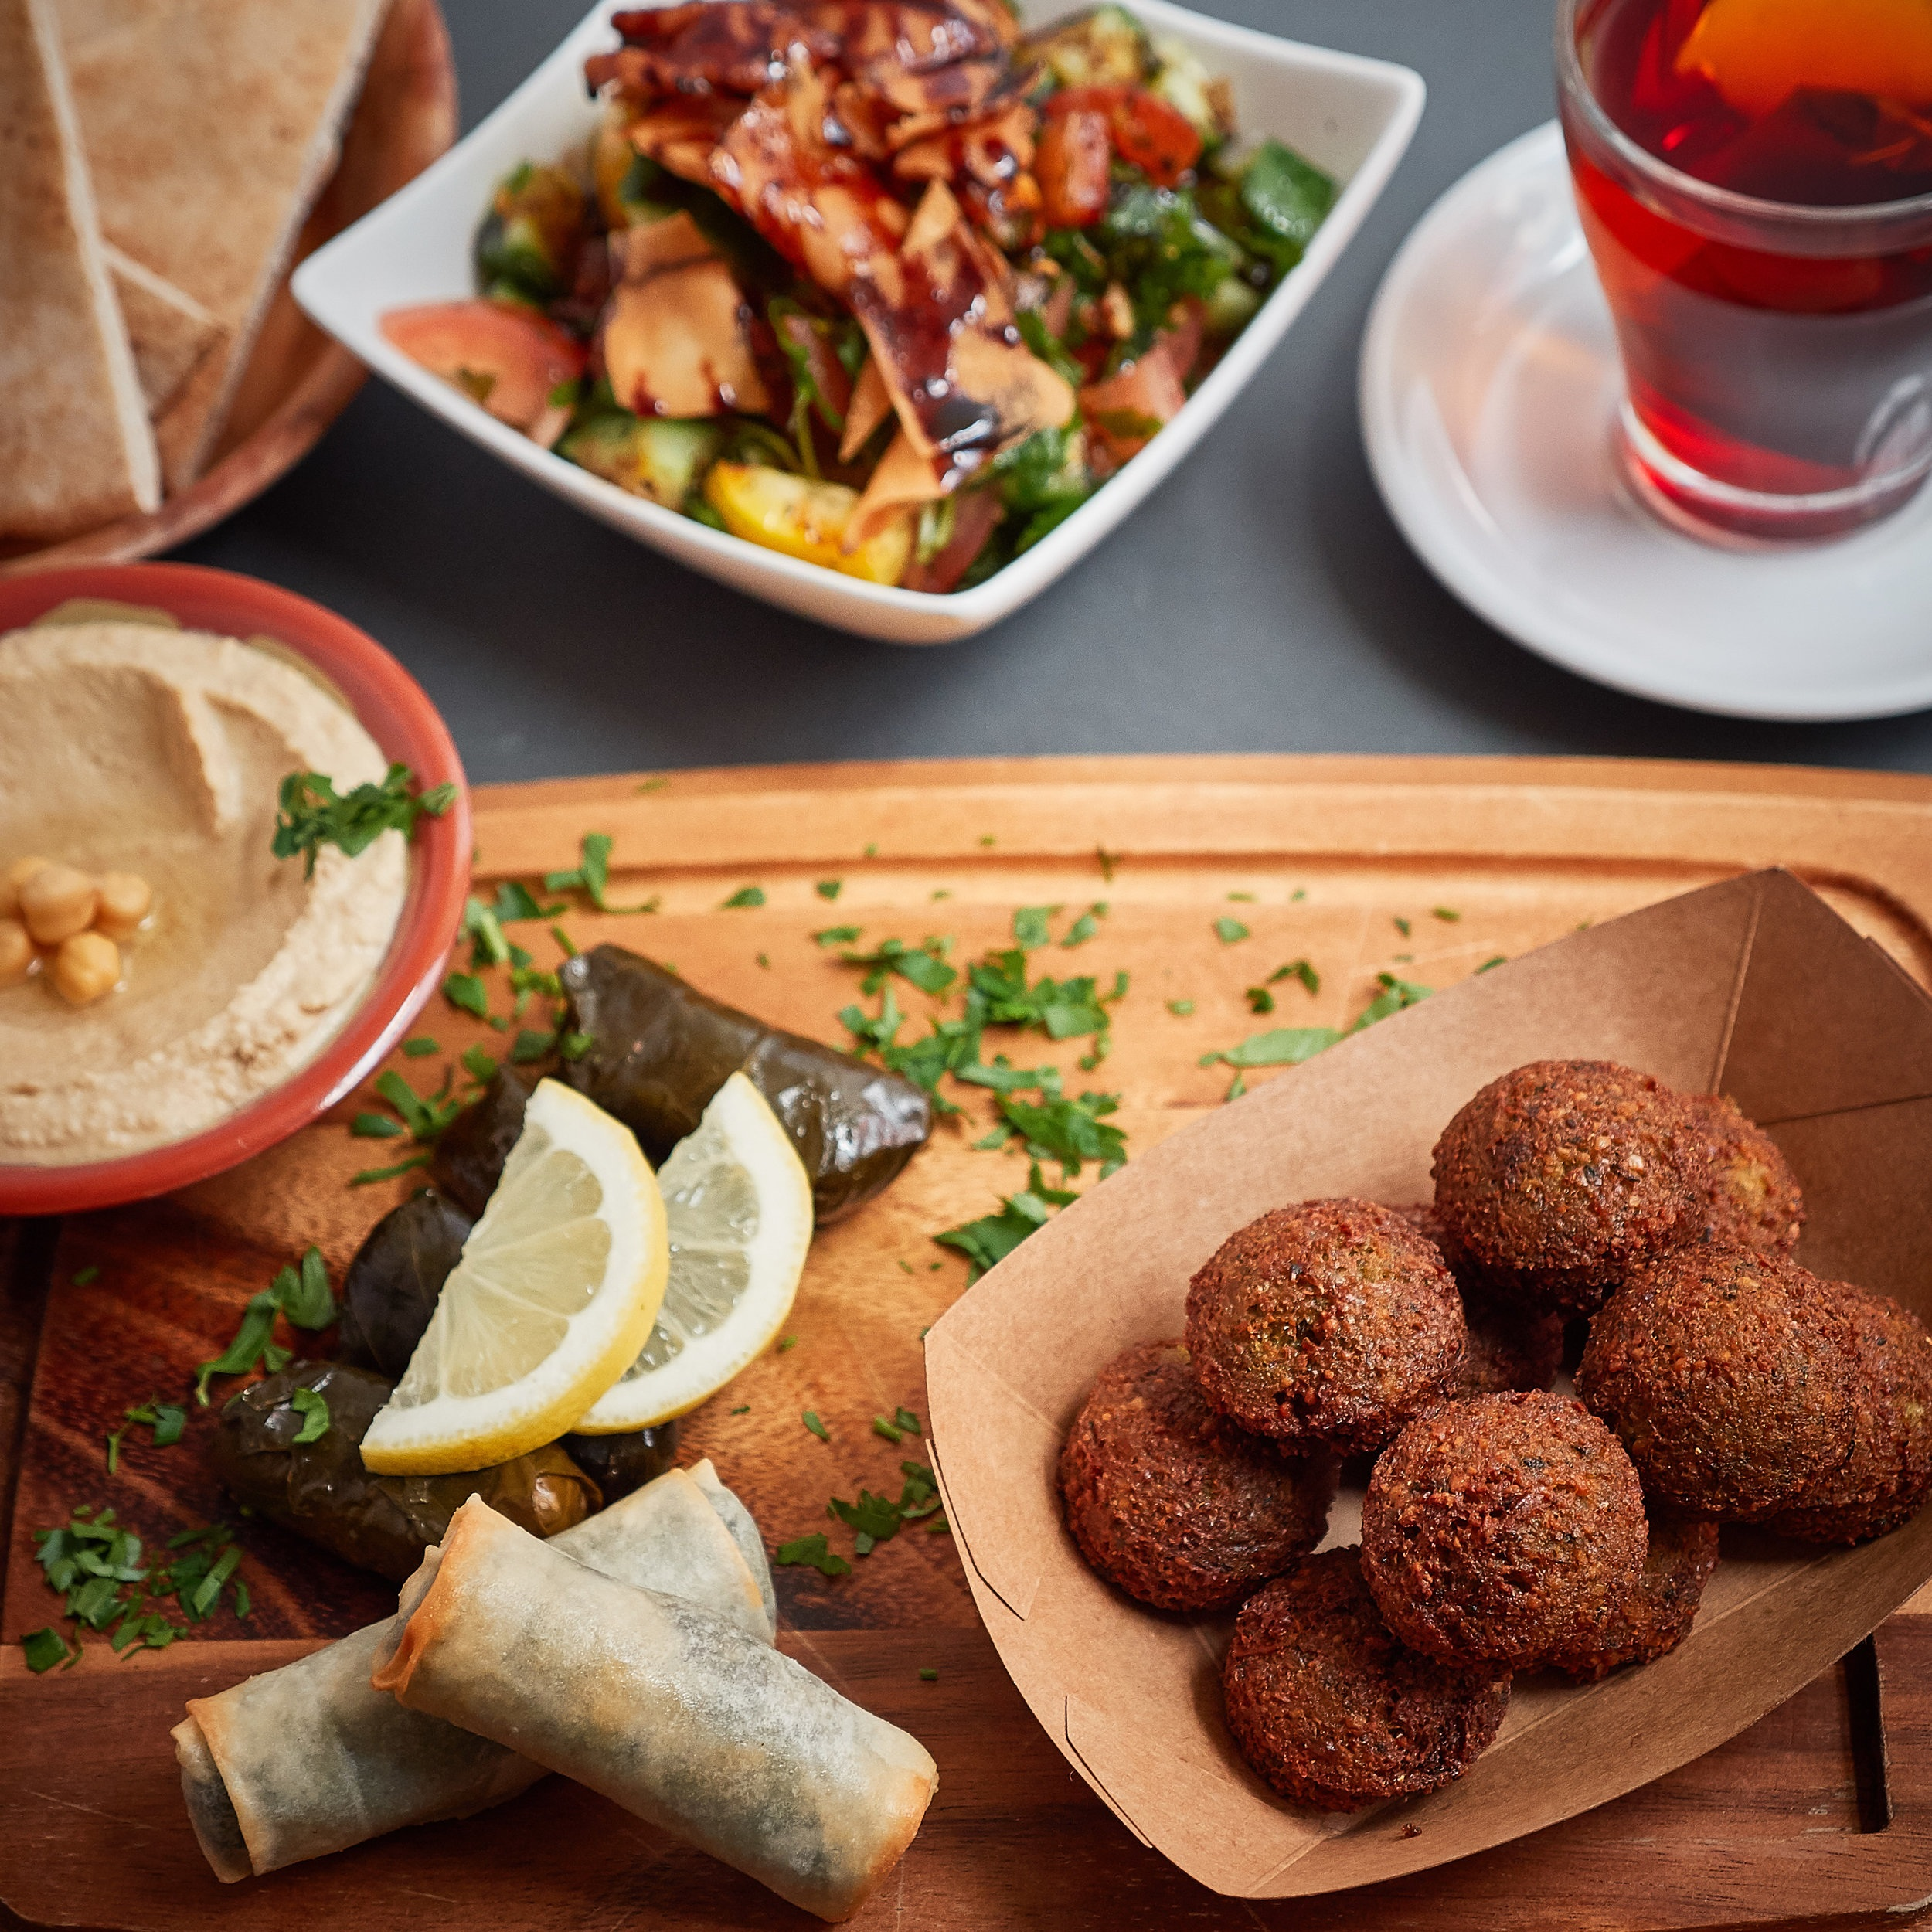 Mary St Dublin - 4 Mary St, Dublin 1 D01 T0C301 445 4344info@umifalafel.ieOpen 7 days from 12.00 to 21.00